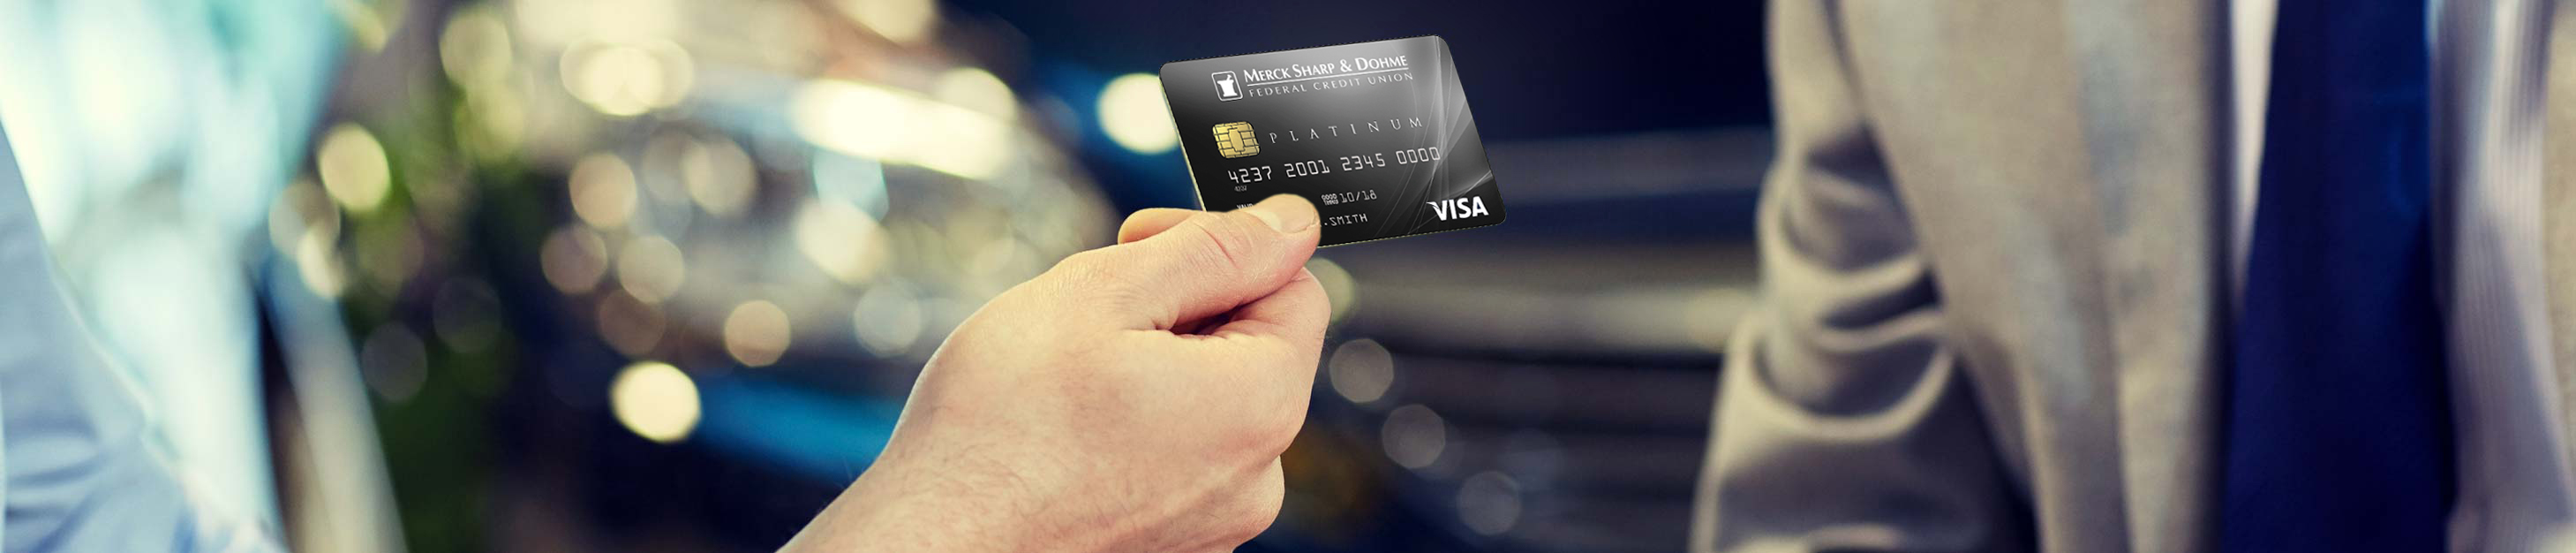 credit-card-header